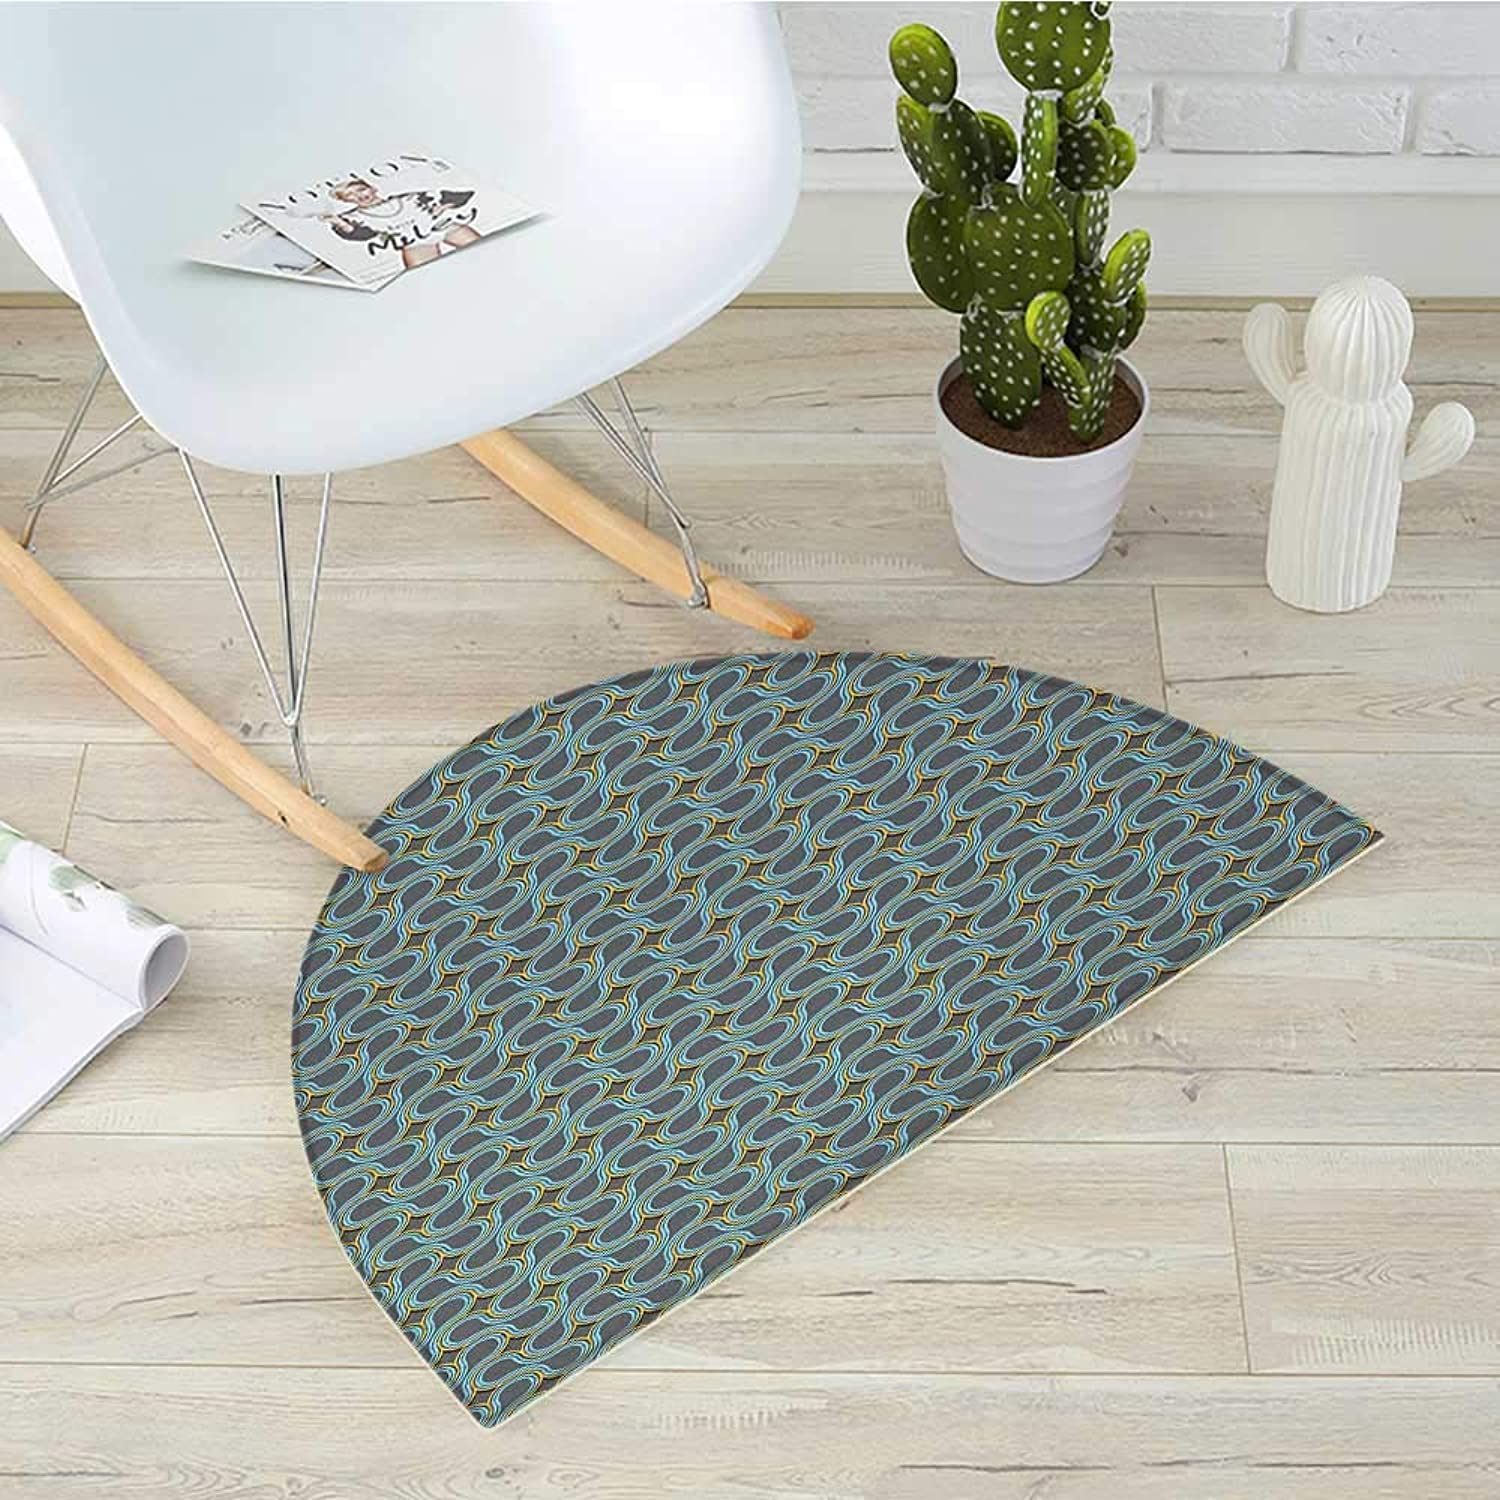 Modern Half Round Door mats Geometric Pattern with Twisted Tangled 3D Style Lines Curves and Waves Bathroom Mat H 31.5  xD 47.2  Grey Marigold Pale bluee